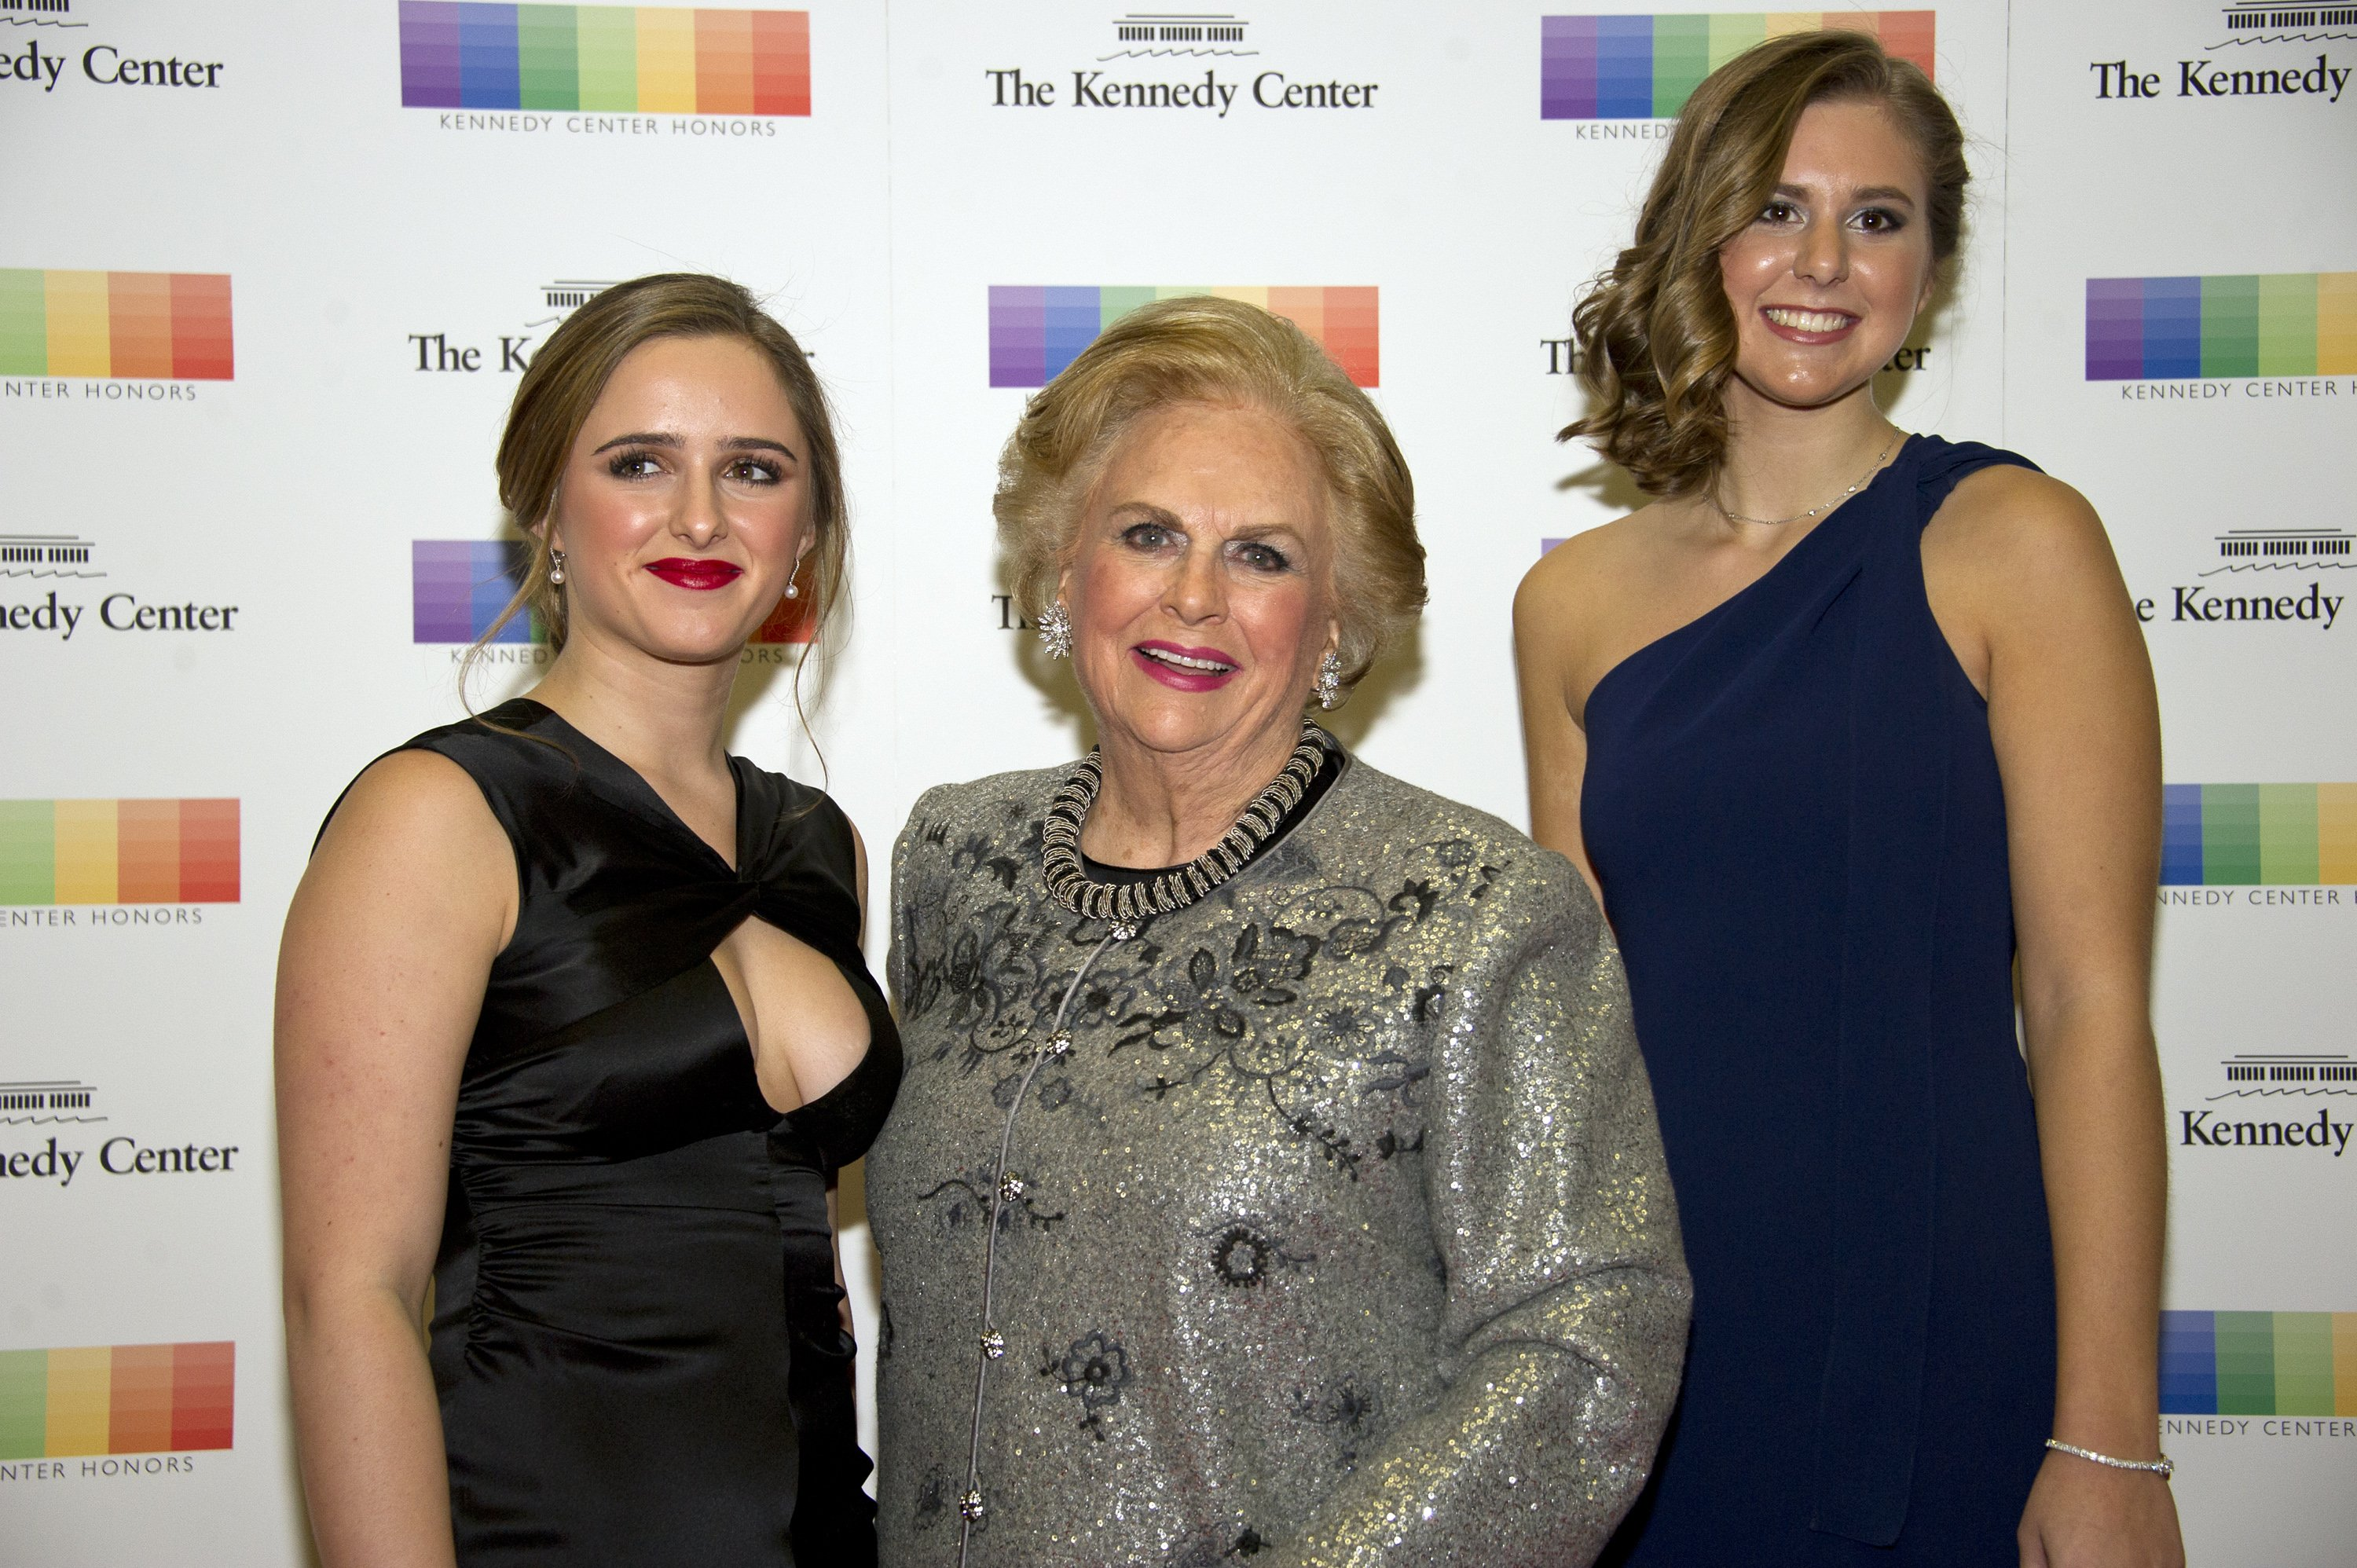 Jacqueline B. Mars and granddaughters Graysen Airth  and Katherine Burgstahle rat the Artist's Dinner honoring the recipients of the 39th Annual Kennedy Center Honors in Washington, D.C. on December 3, 2016 | Photo: GettyImages